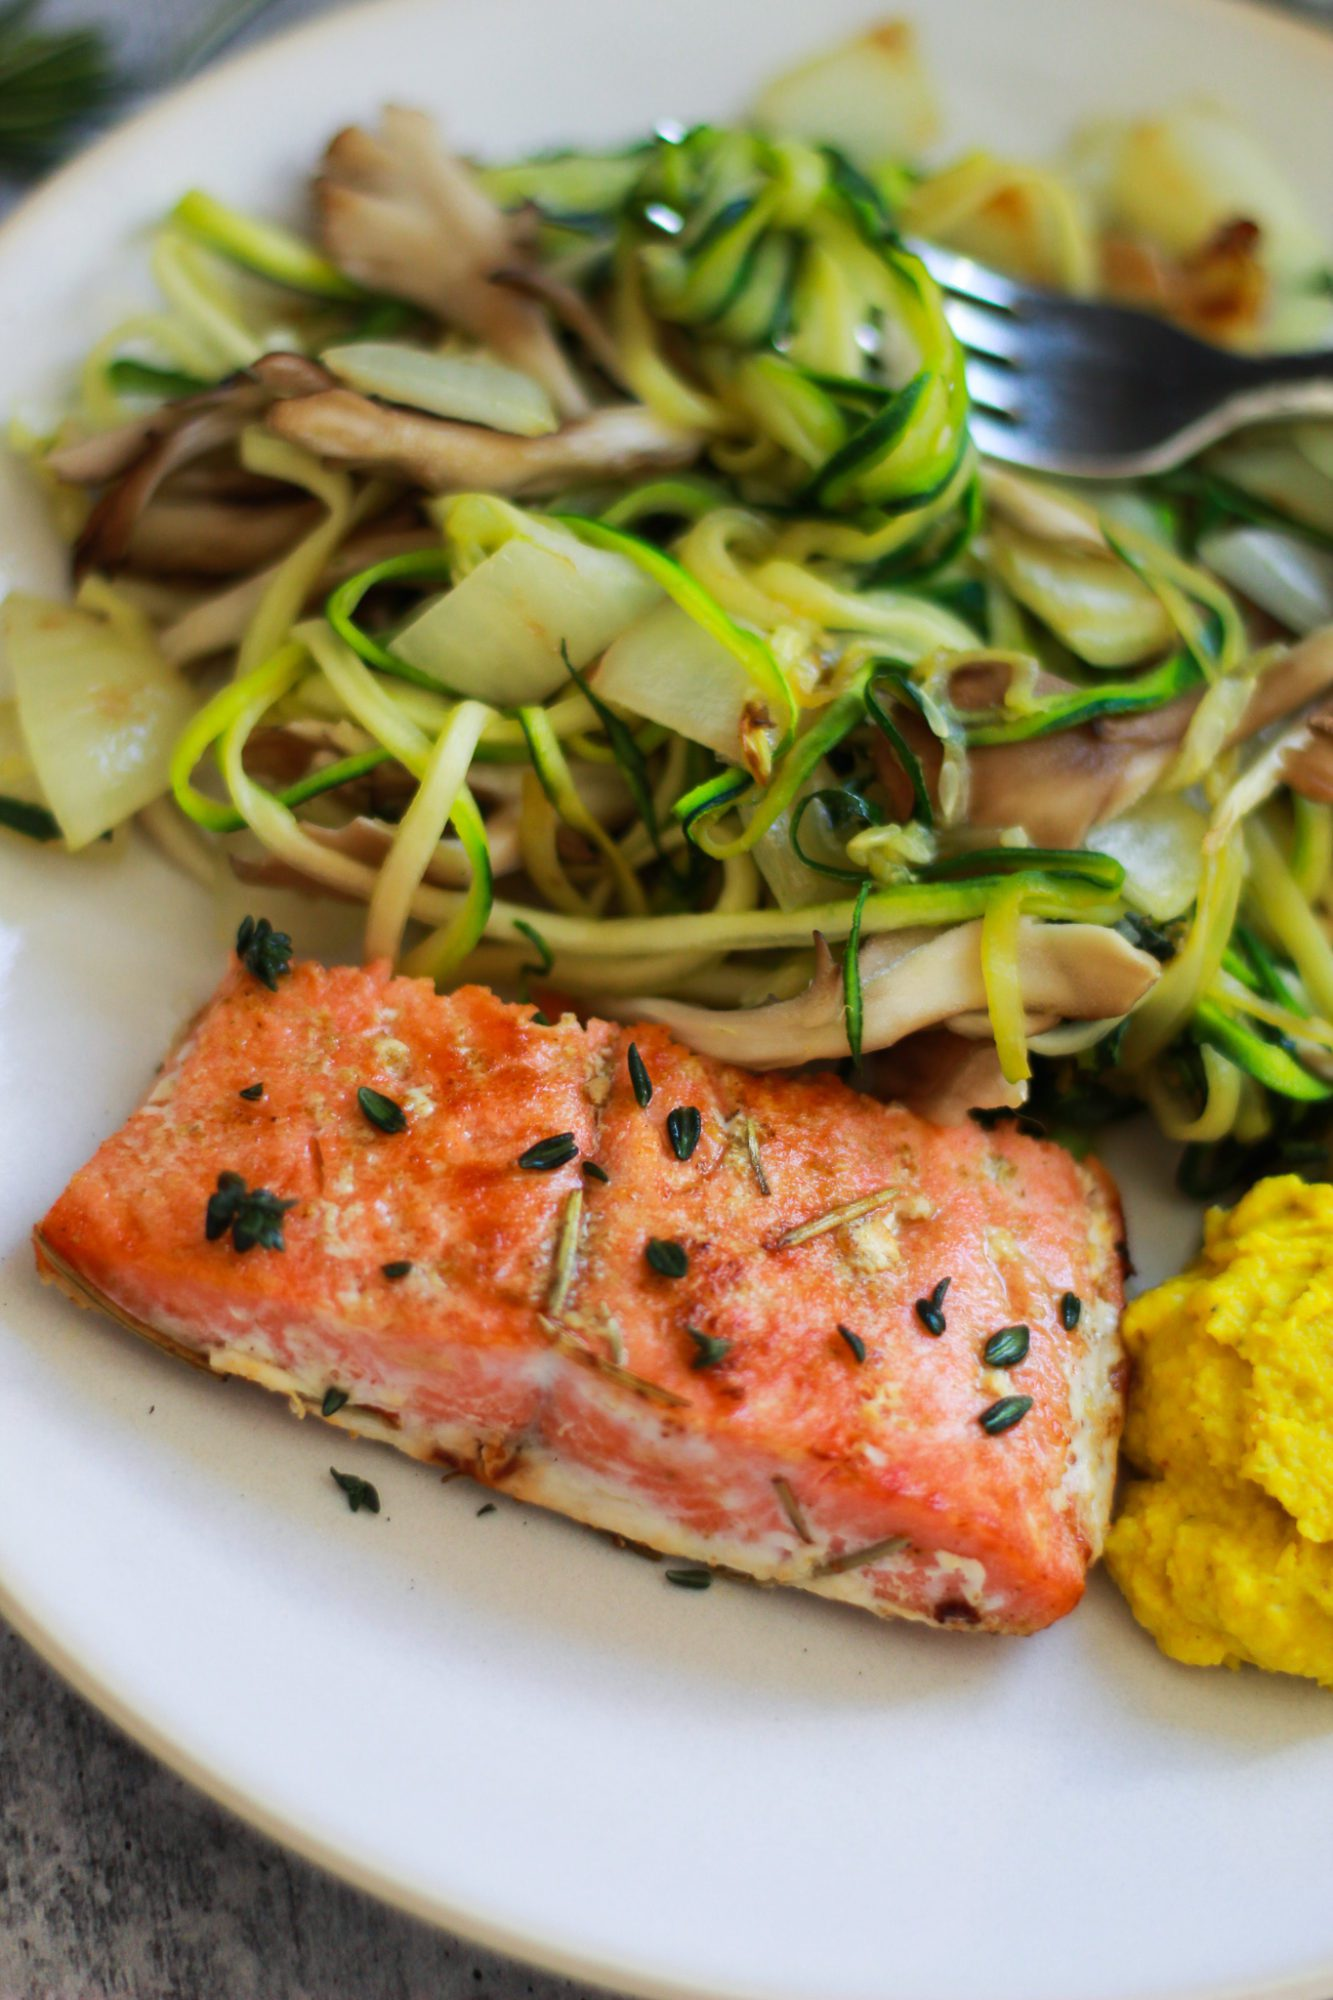 Keto Salmon and Mushroom Zoodles | This healthy salmon recipe is Whole 30 compliant, Paleo, gluten-free, dairy-free, low-carb, and sugar-free. Featuring zucchini noodles and mushrooms, it's a healthy dinner recipe packed with nutrients and protein. | The Banana Diaries #thebananadiaries #keto #ketogenic #Paleo #glutenfree #dairyfree #sugarfree #lowcarb #salmon #healthydinner #healthyrecipe #ketodinner #Whole30dinner #Paleodinner